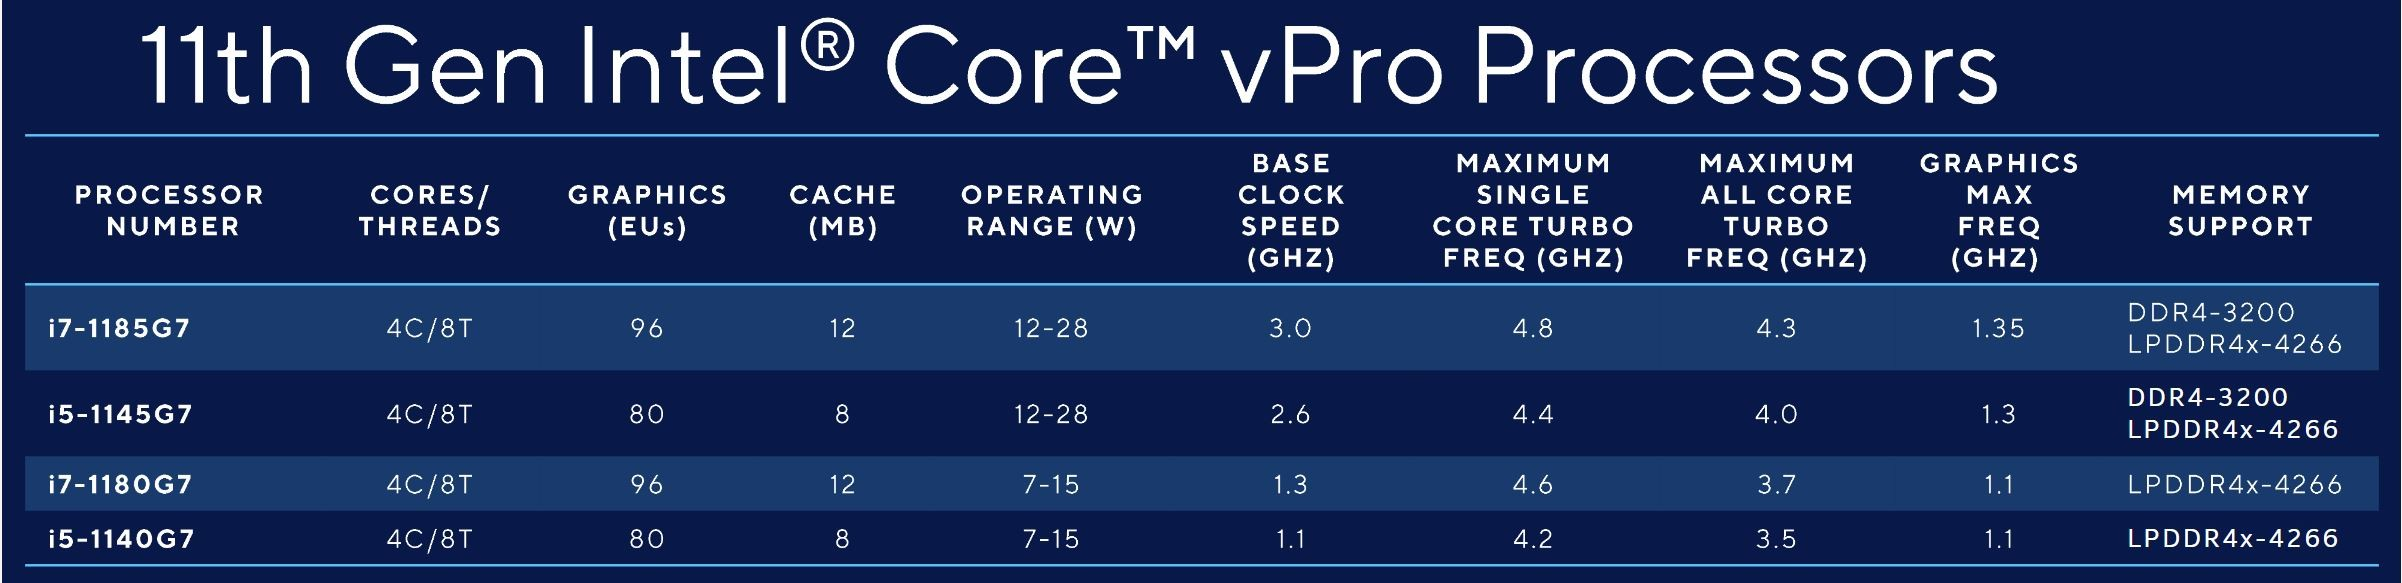 Tabla comparativa de procesadores Intel Core vPro Generation 11